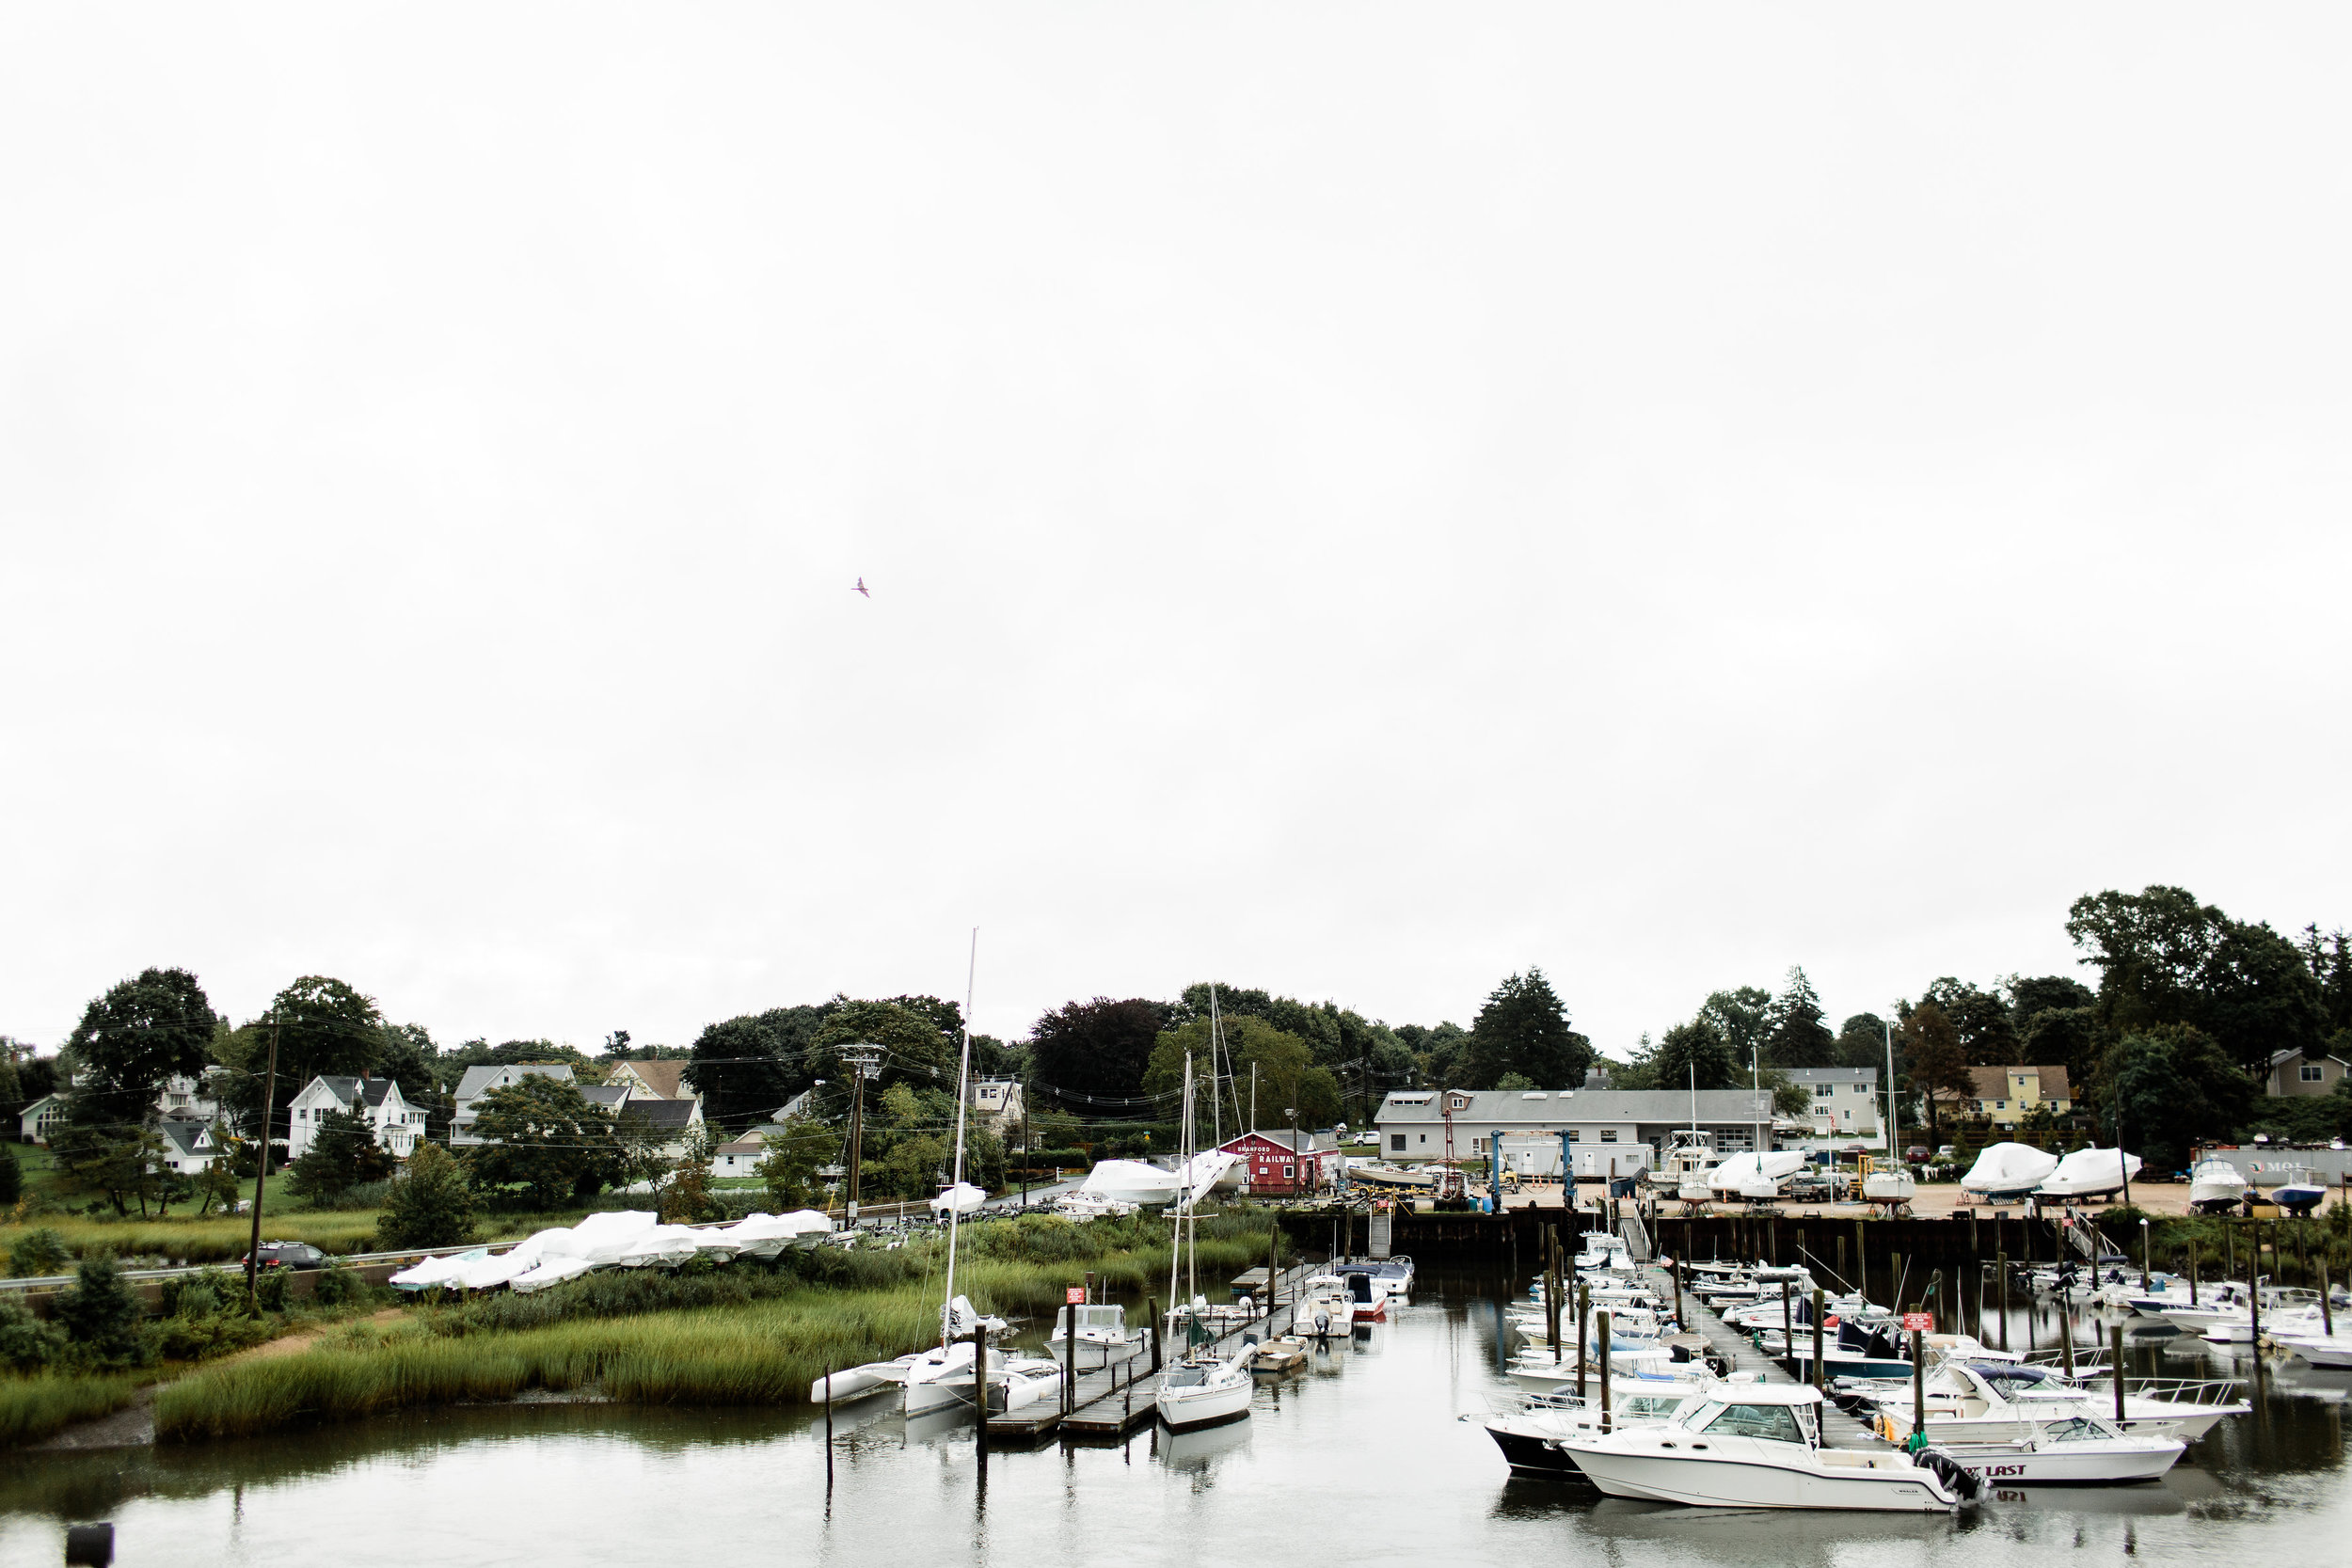 Boat yard at Stony Creek Brewery - Pearl Weddings & Events